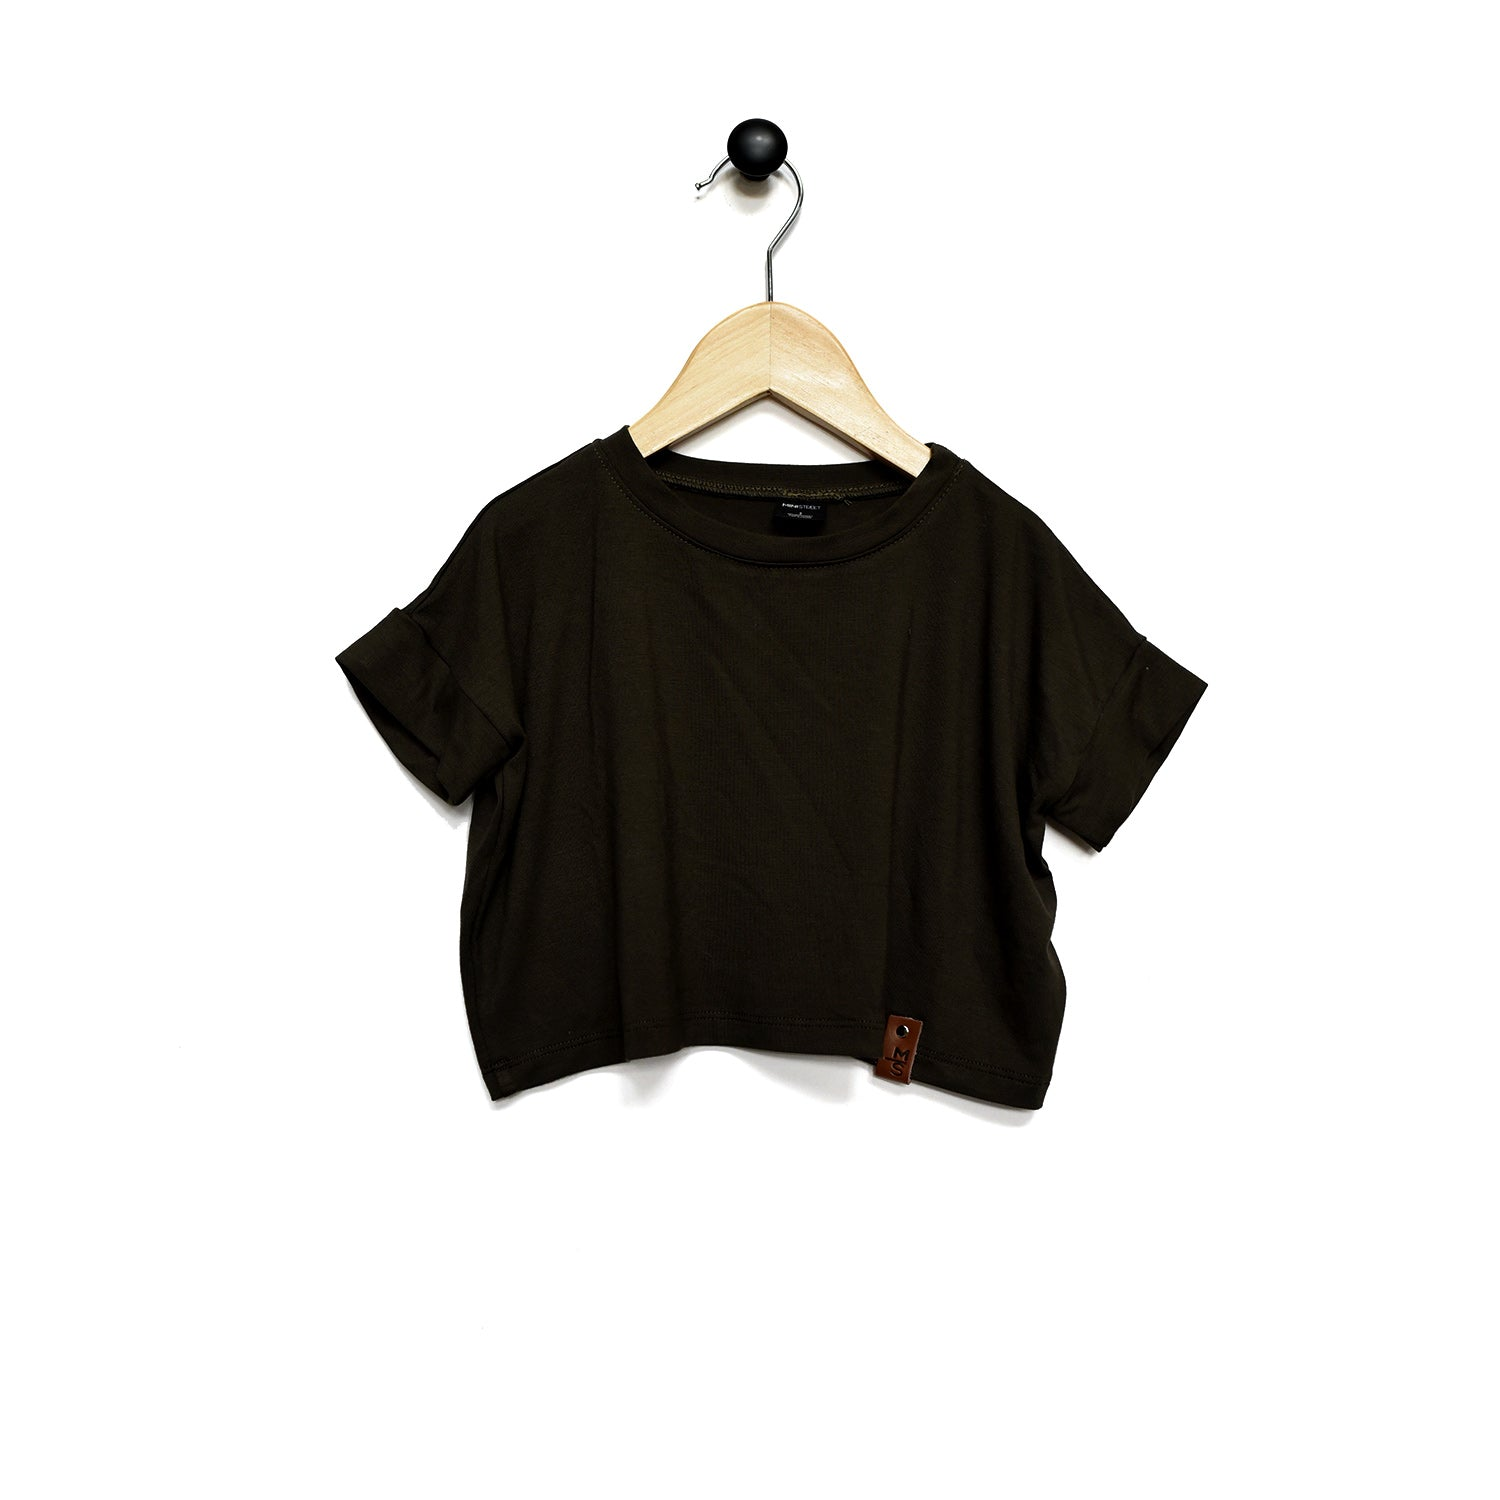 Blaire Crop Top - Black Rib